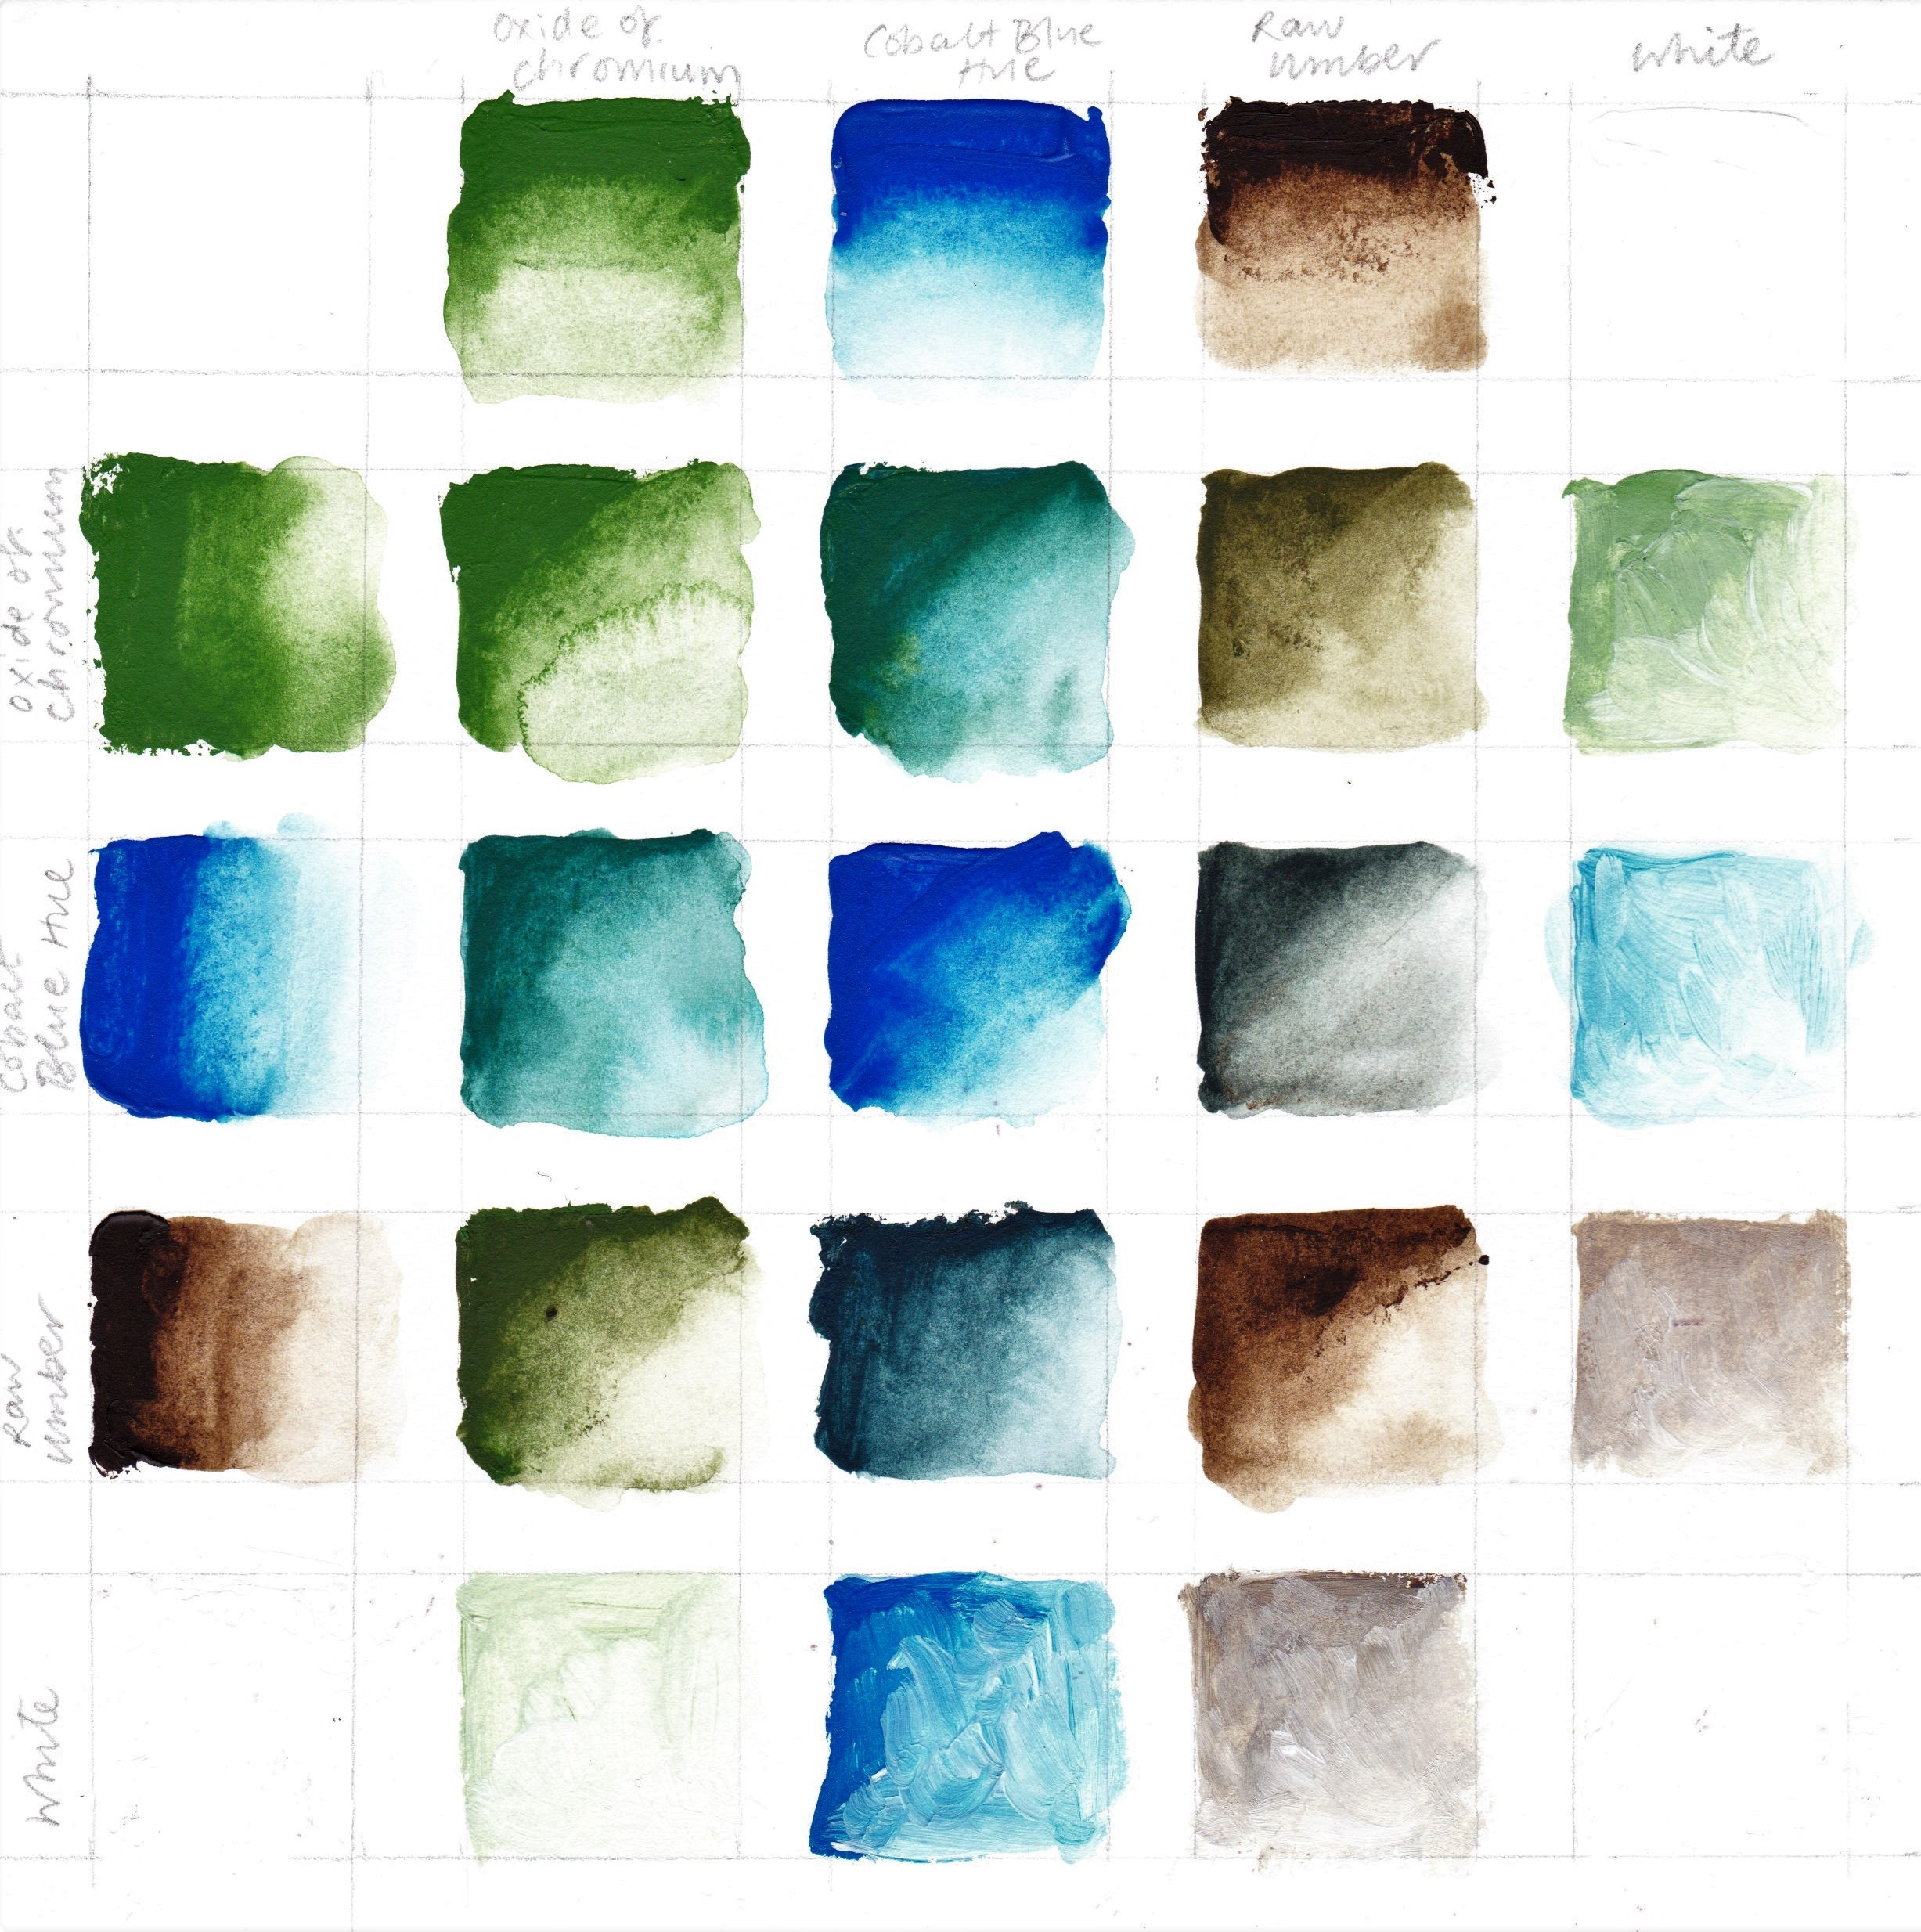 The top row (the x axis) and the far left column (the y axis) show the colours of my limited palette in their unmixed state - where the colour appears darkest is how the colour appears from the tube, I then thinned each colour out with a little water in the rest of the square. Each colour on the x axis is mixed with the corresponding y axis colour as you move down the column of squares.